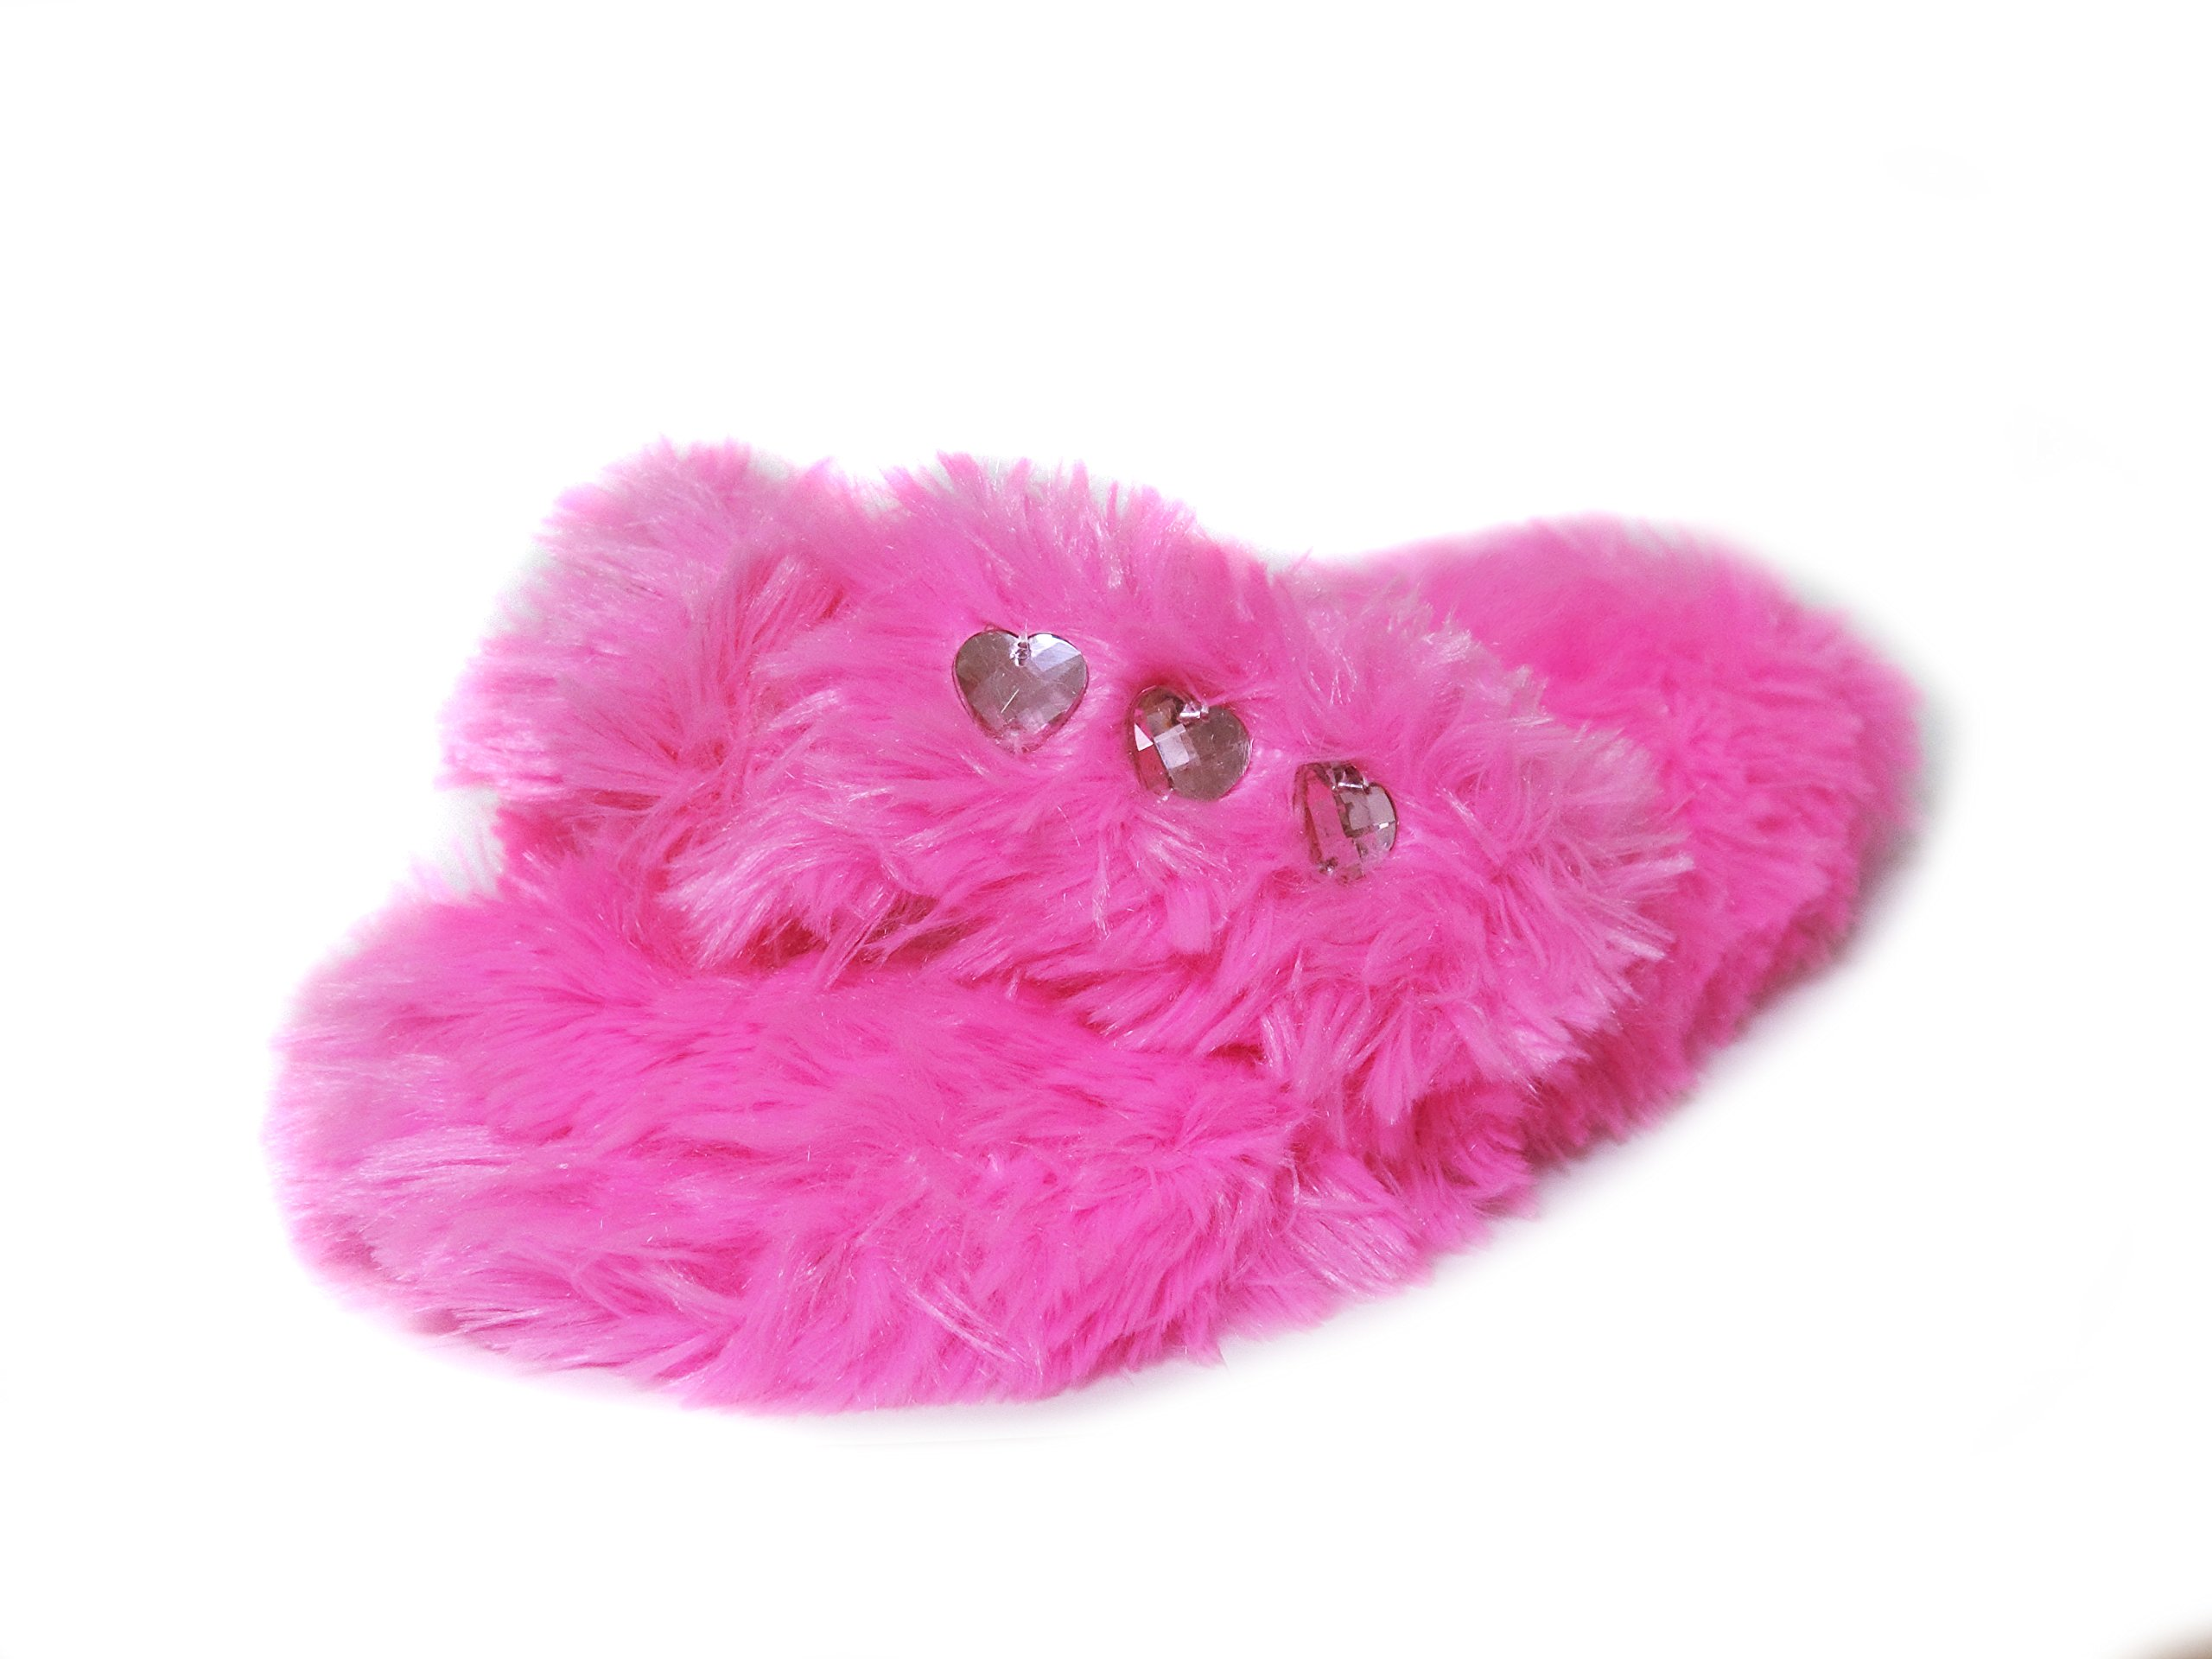 Onmygogo Girl's Bejeweled Flip Flops, Little Kid Fuzzy Indoor Princess Slippers, 3 Sizes (M-US Little Kid Size 12.5-1, Pink)